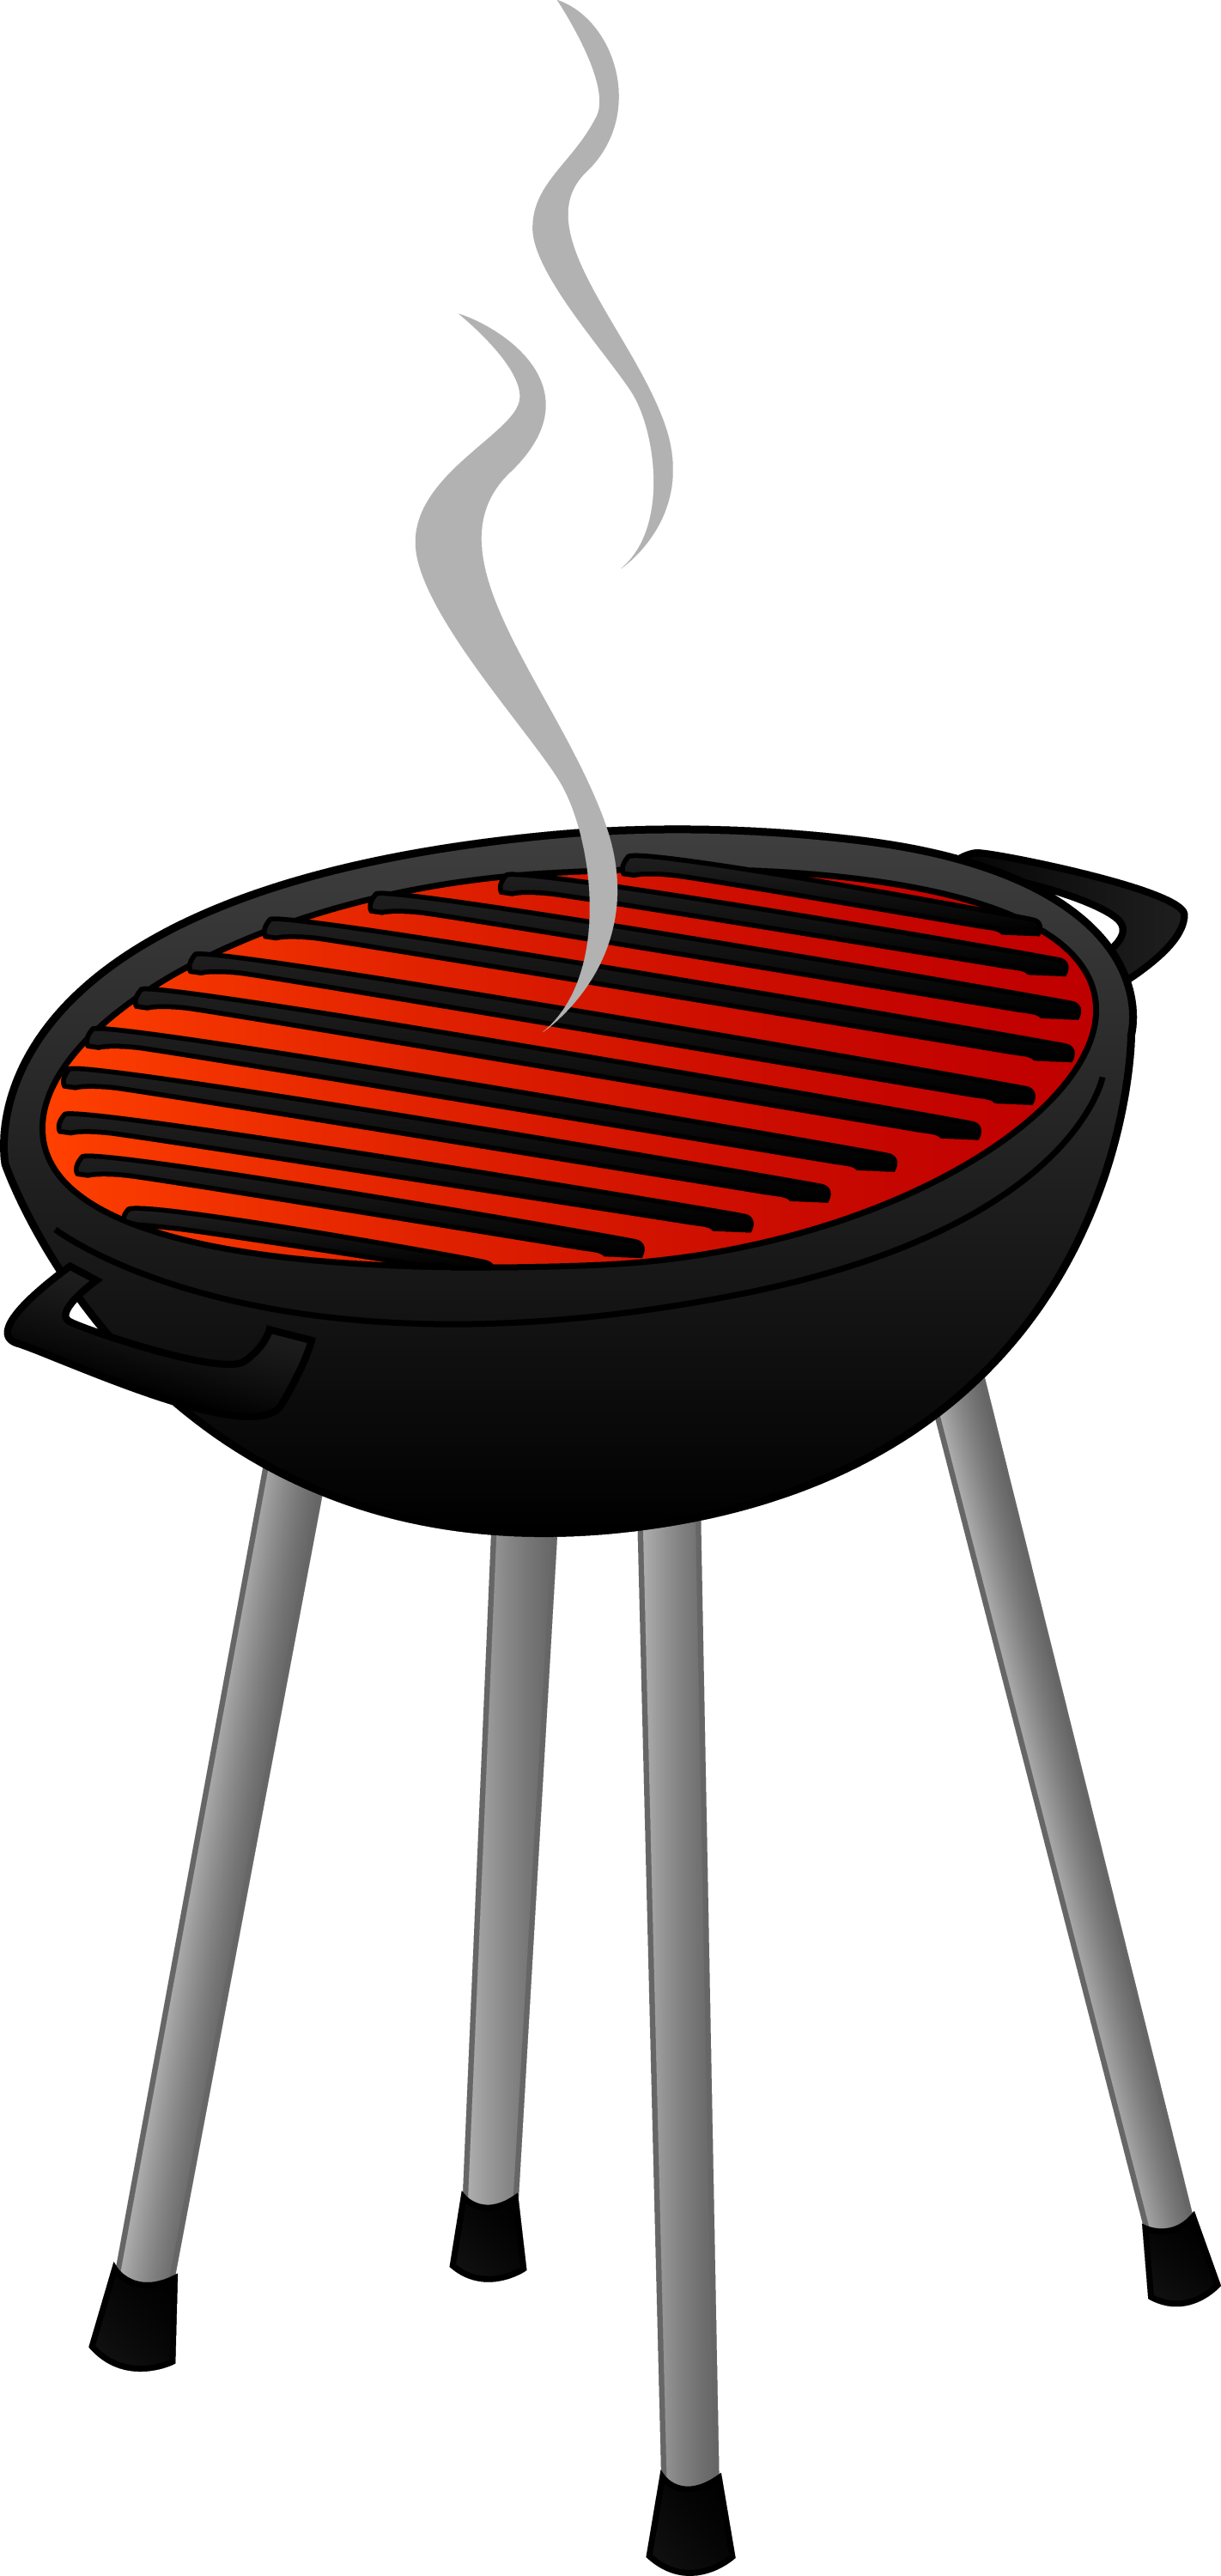 Barbeque Grill Design Free Clip Art